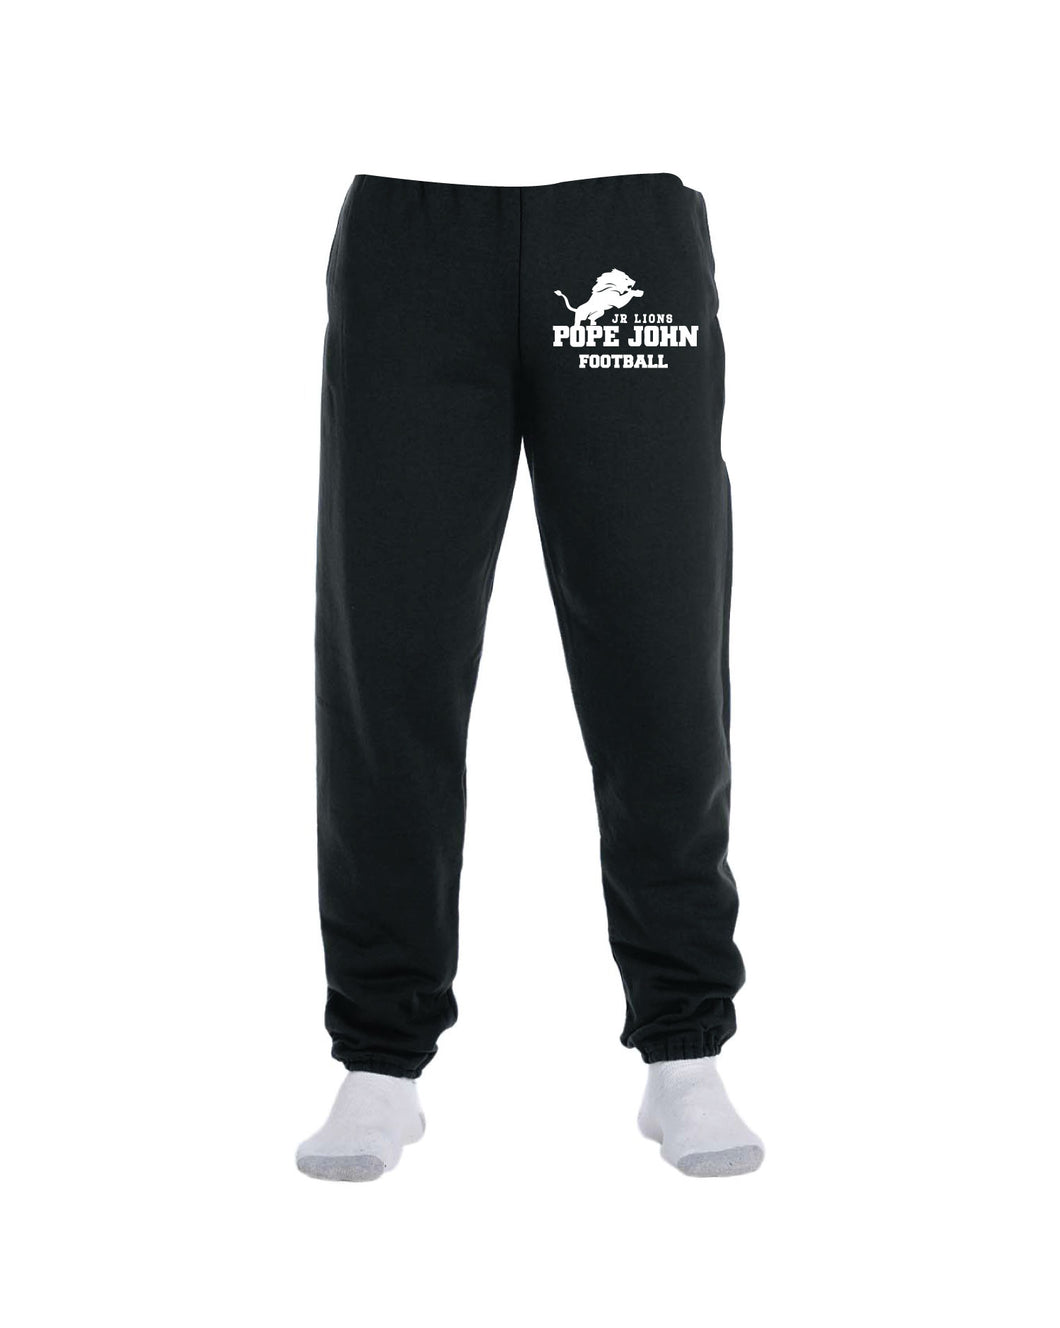 Pope John Jr. Lions Football Cotton Sweatpants